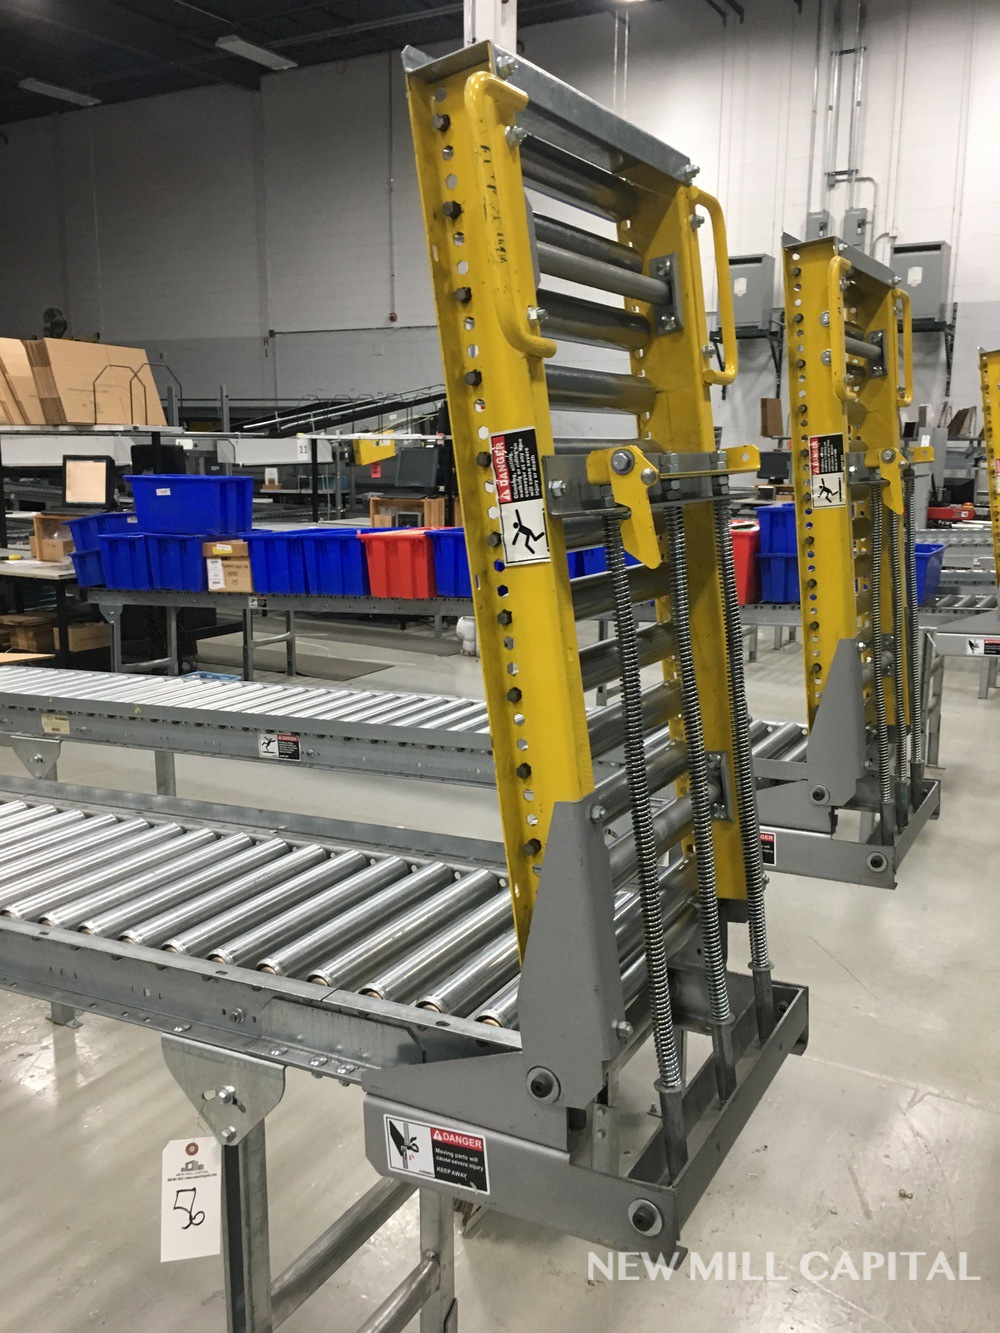 Lot 56 - Spring Assisted Roller Conveyor & Gate, Approx 20ft OA Length, 15in Wide Rol | Rig Fee: $150